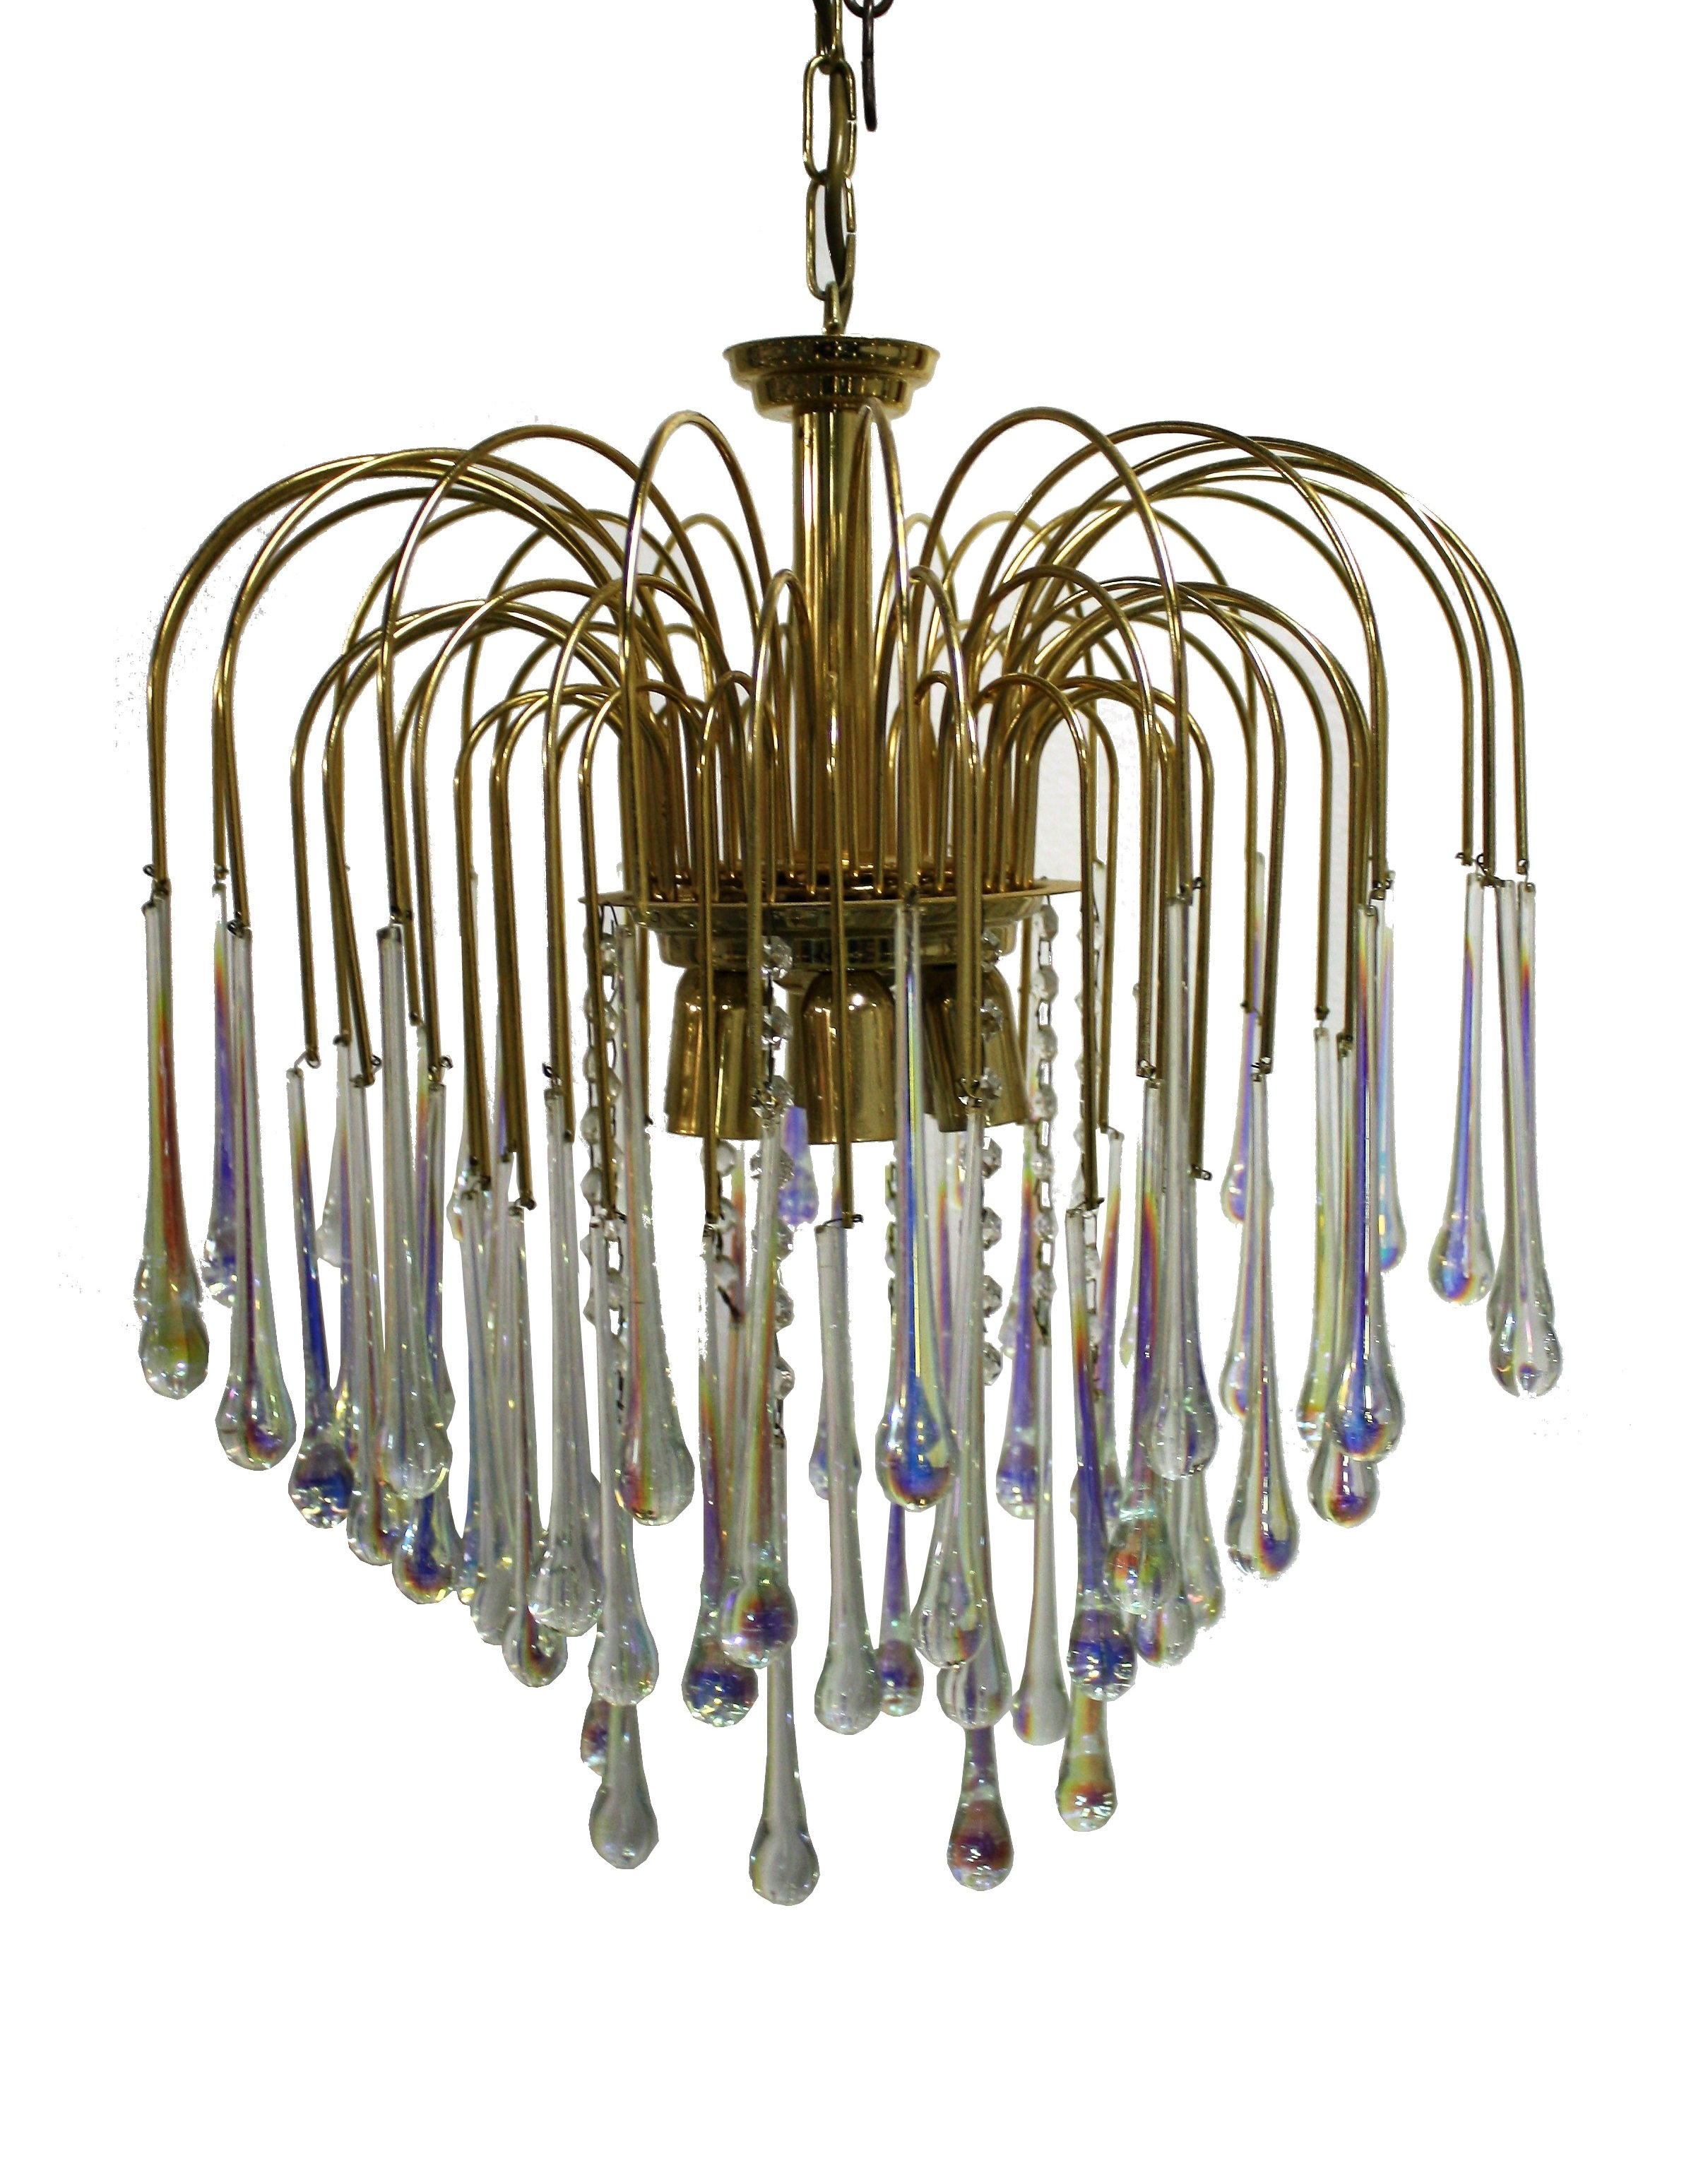 Vintage Brass Teardrop Chandelier With Crystal Murano Glass 1960